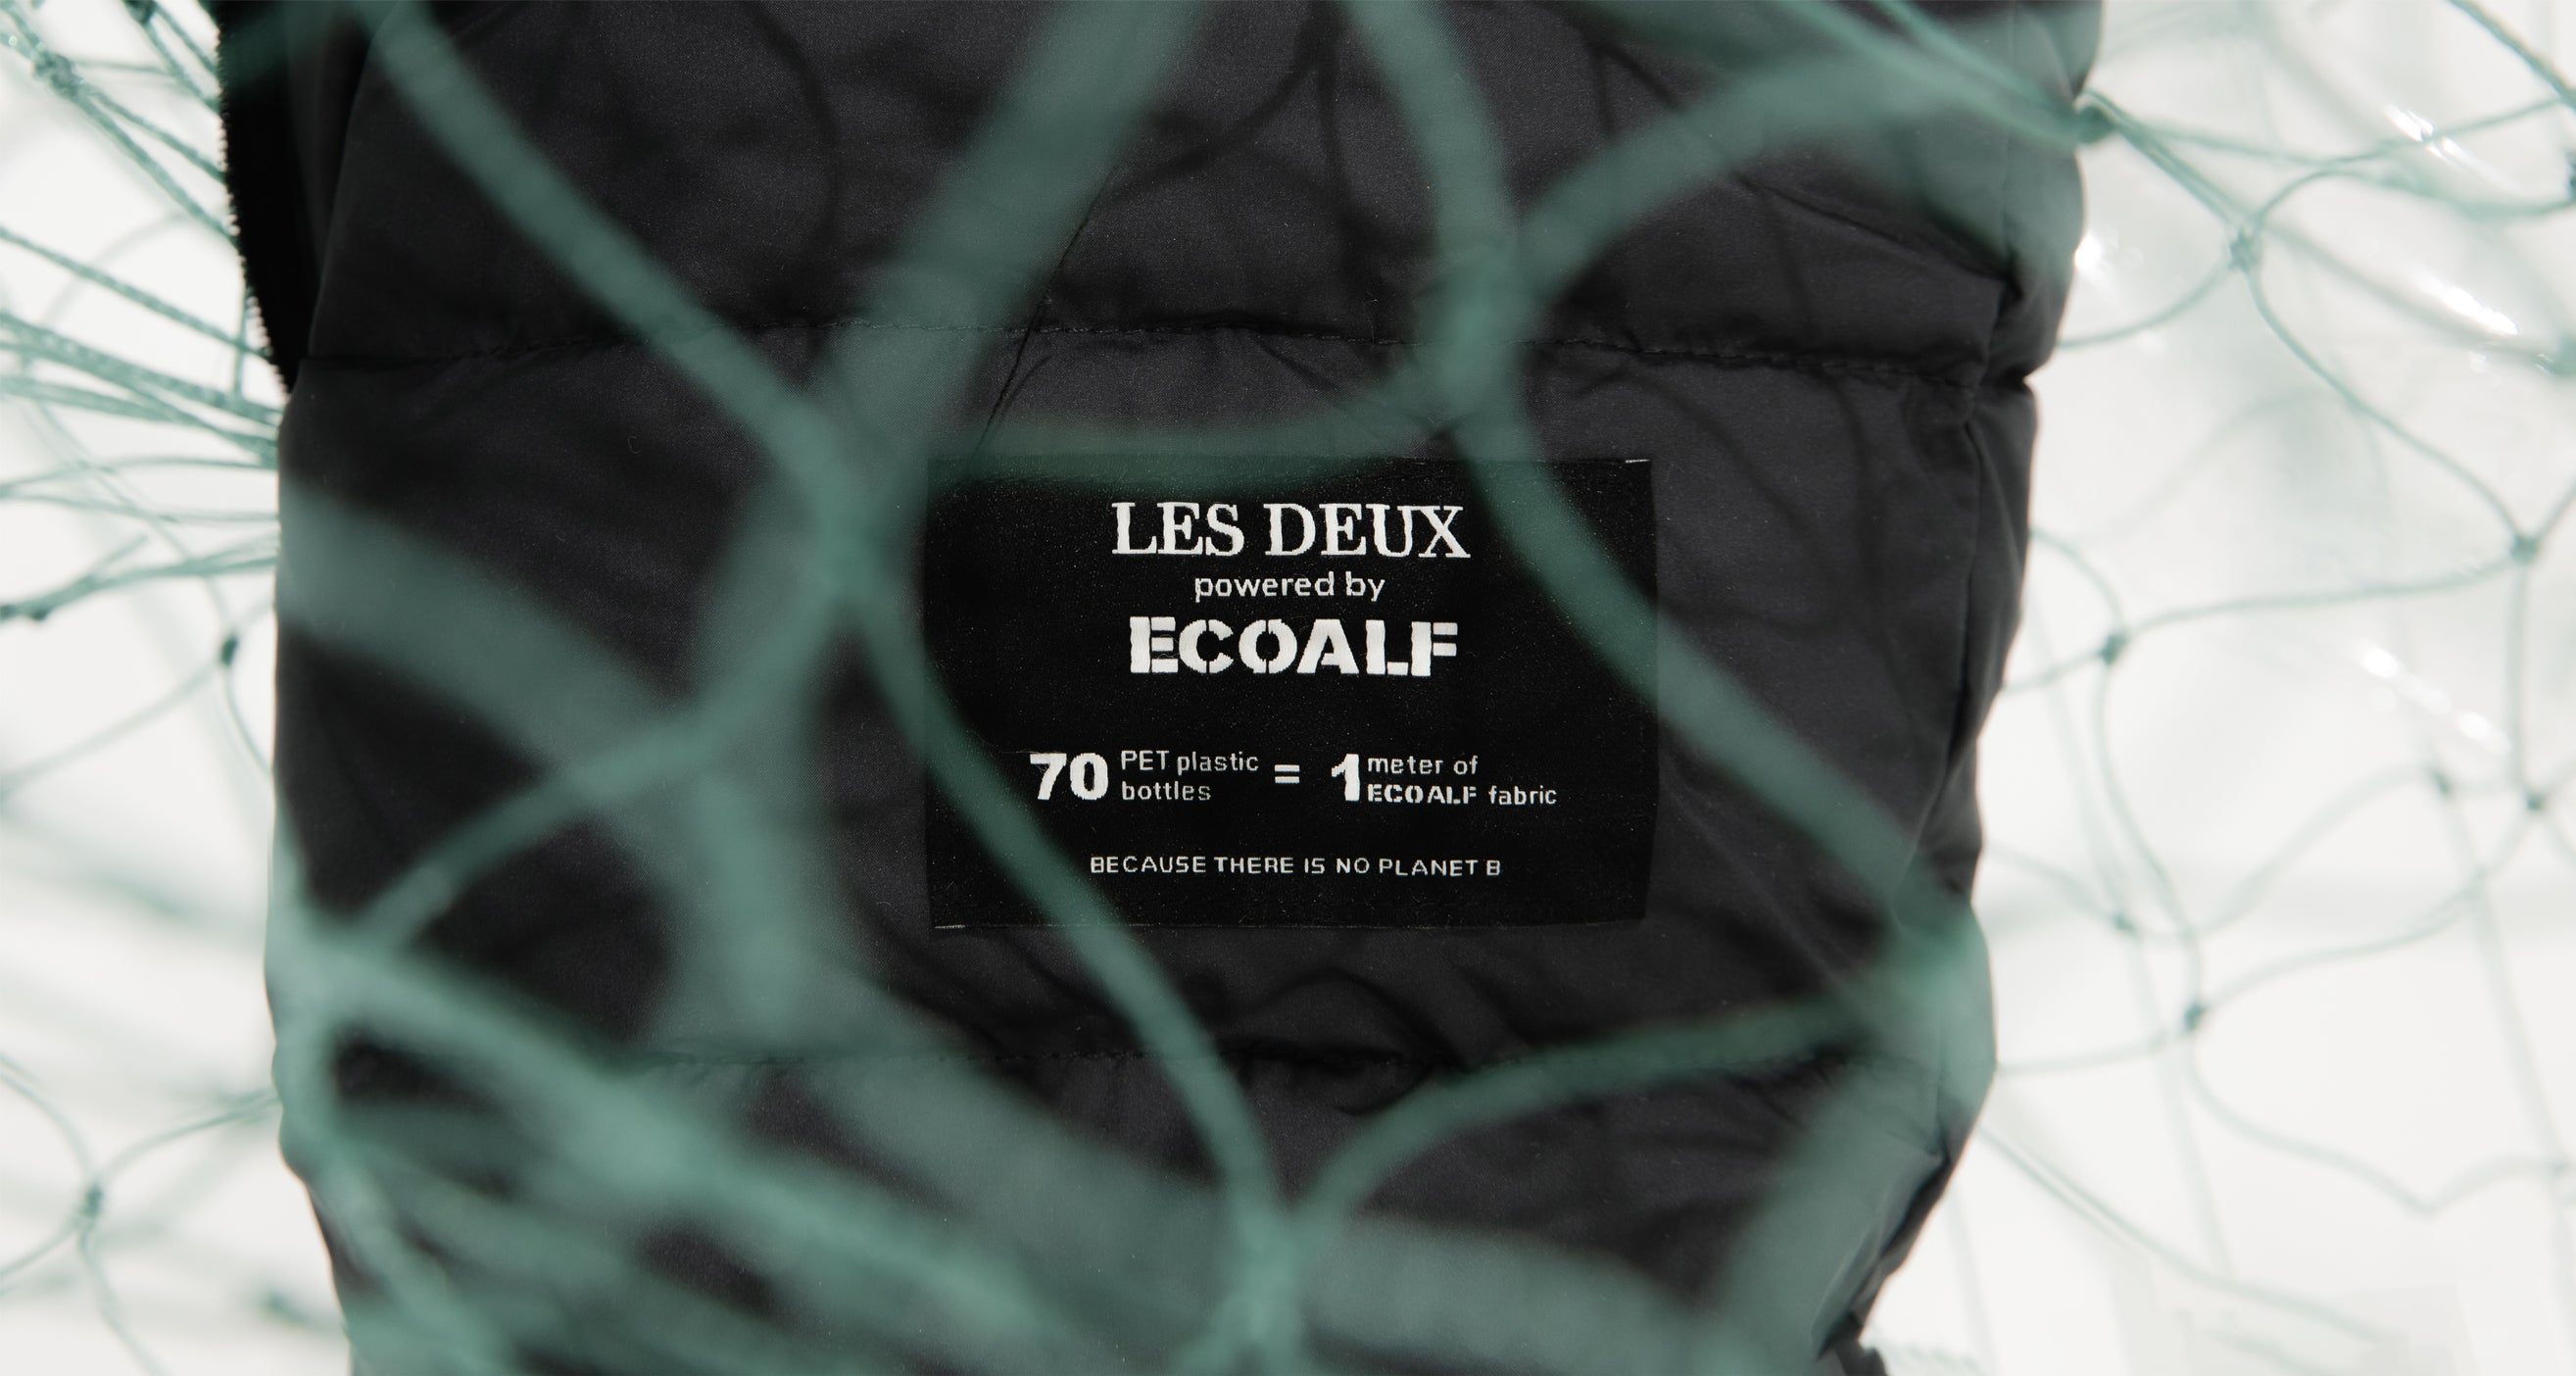 EcoAlf for Les Deux - A Sustainable Collaboration